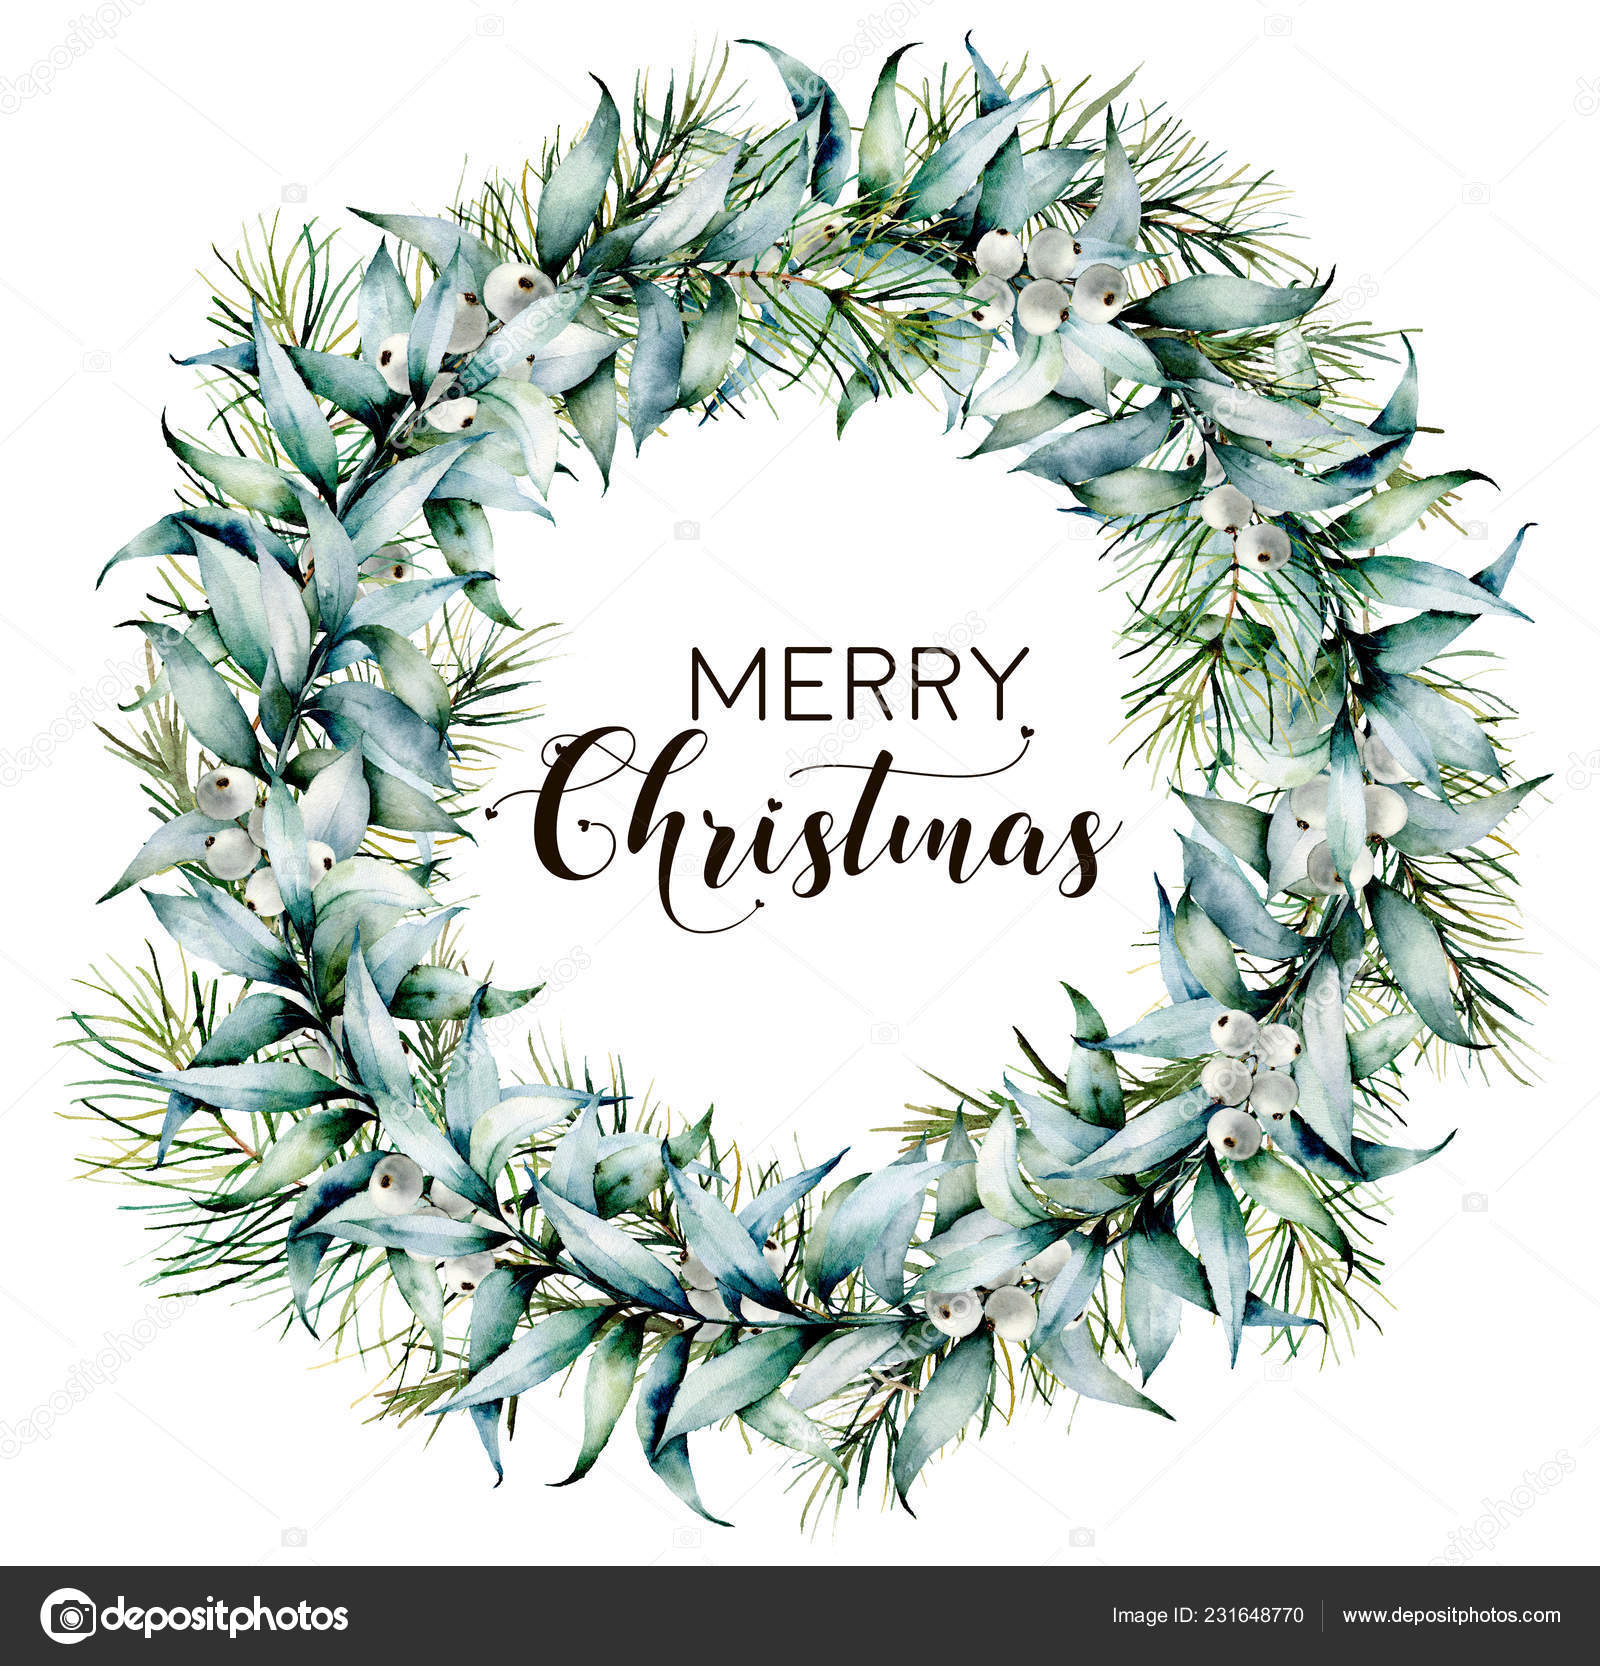 Watercolor Merry Christmas Wreath With Eucalyptus Hand Painted Fir Border With Eucalyptus Leaves And Branches White Berries Isolated On White Background Botanical Floral Print For Design Stock Photo Image By C